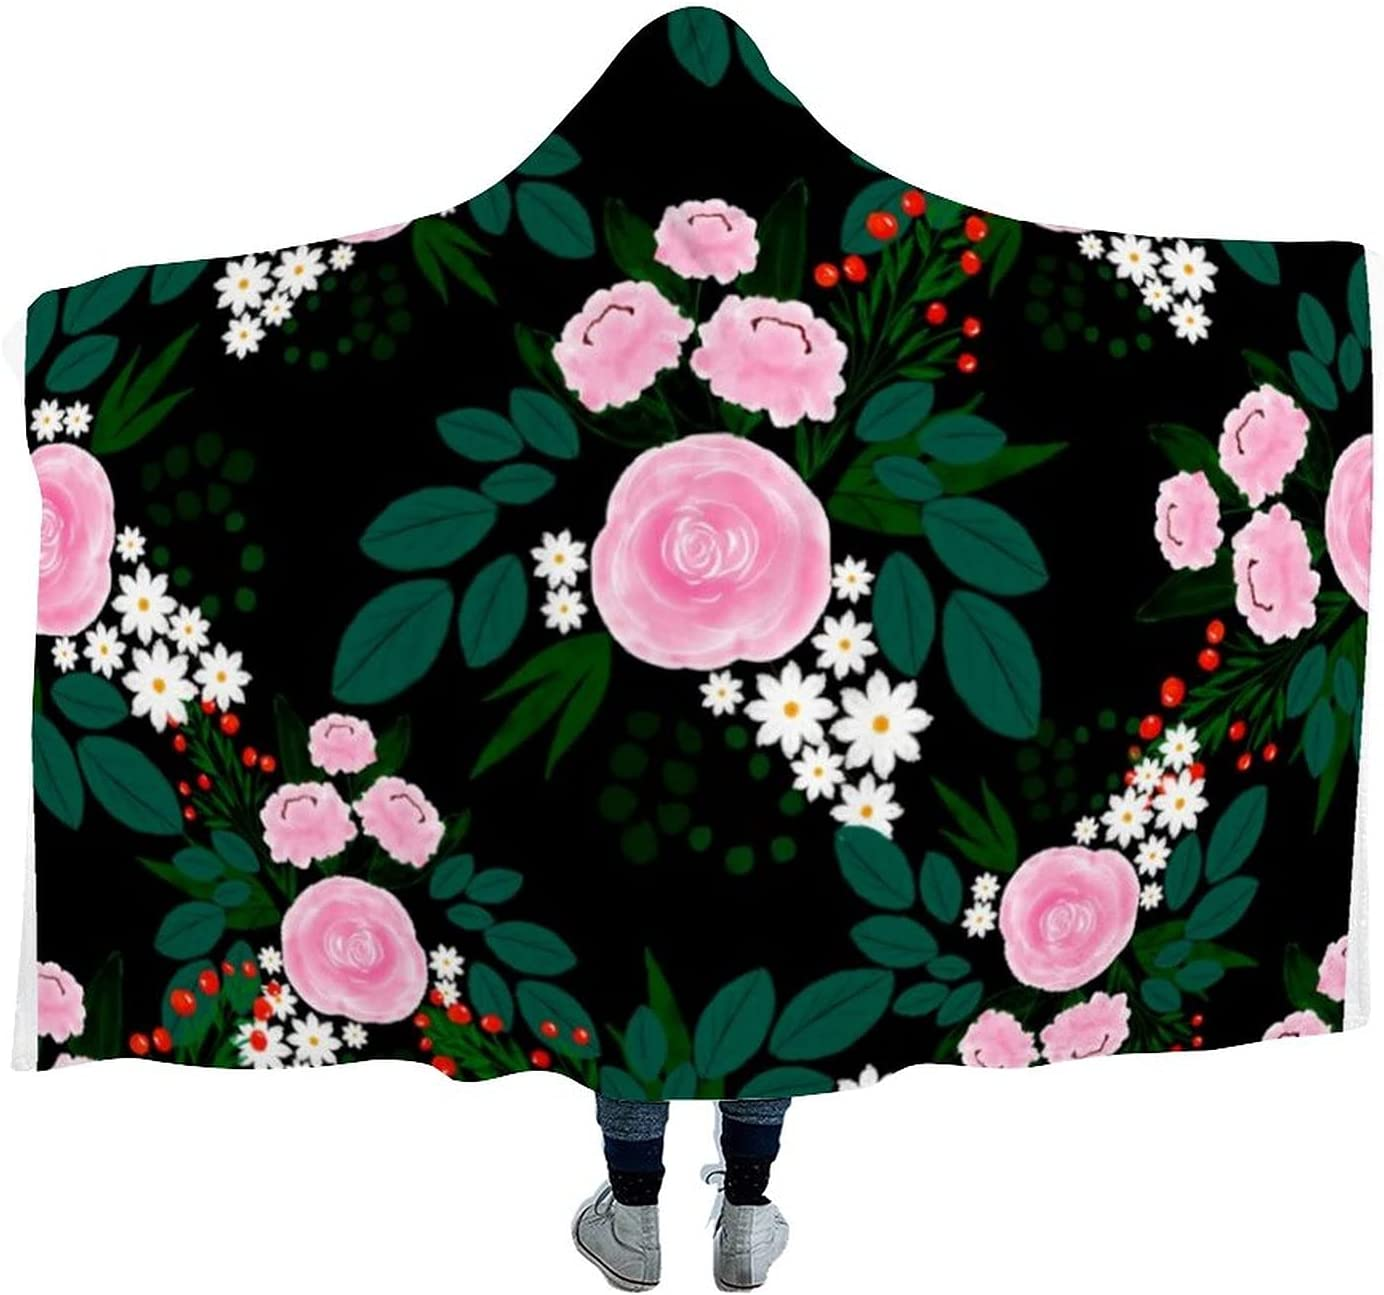 5 ☆ very popular Elegant specialty shop Pink and White Floral Watercolor Wearable Hooded Paint B